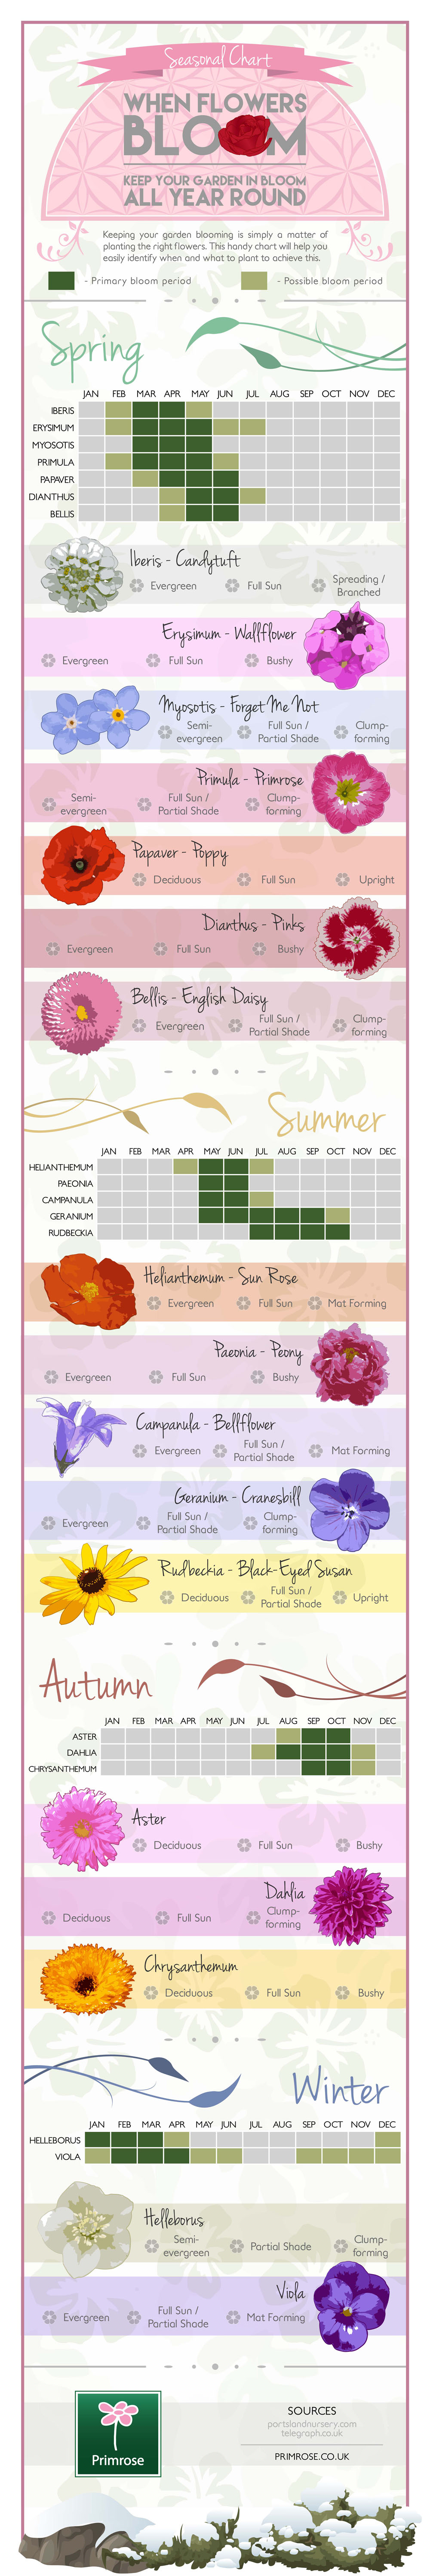 The Definitive Guide For Colourful Gardens All Year Round